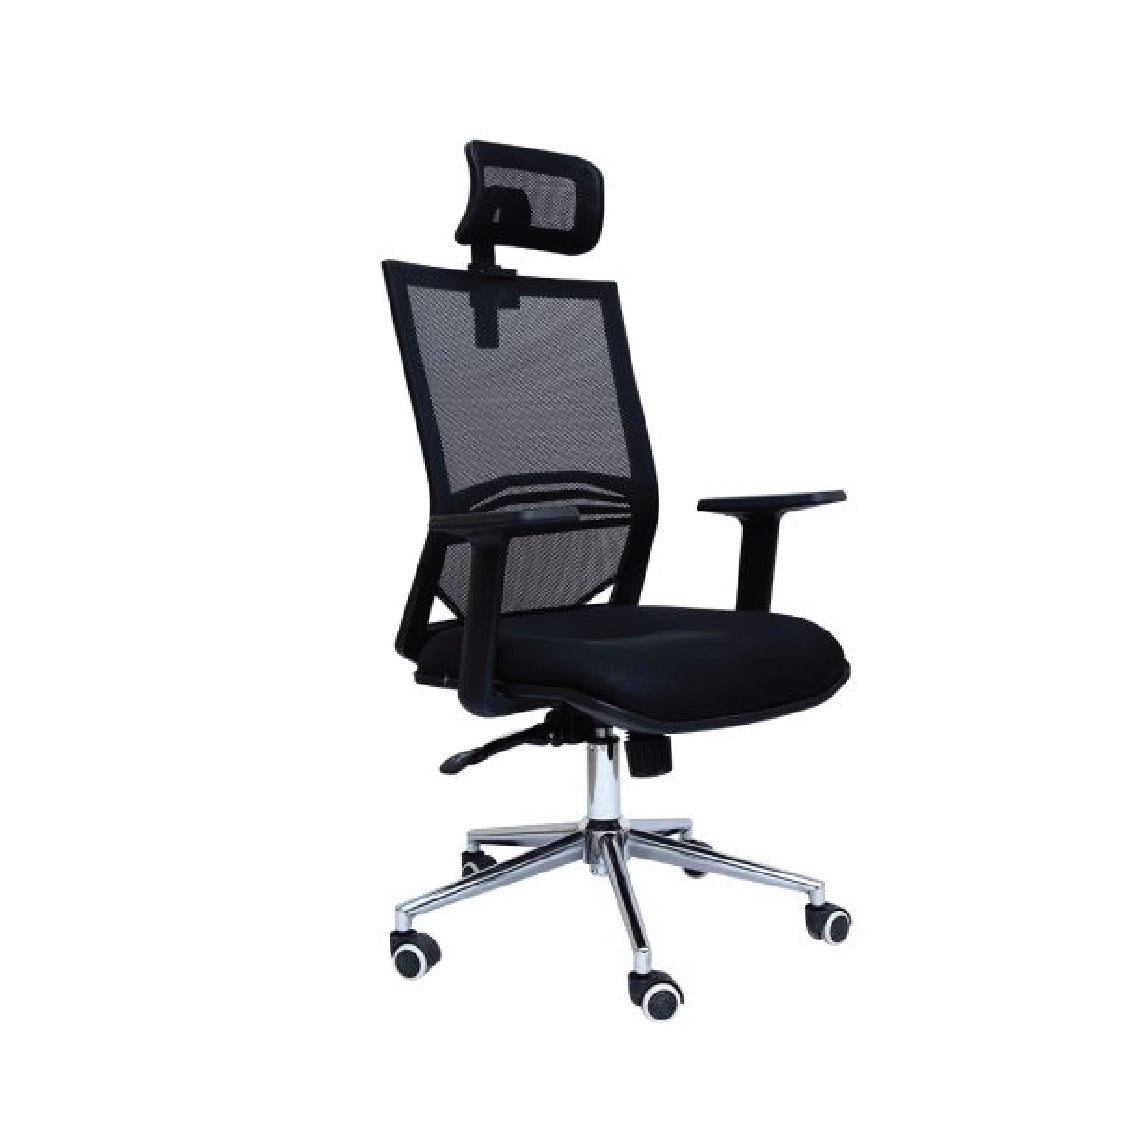 Mark Executive Revolving Chair